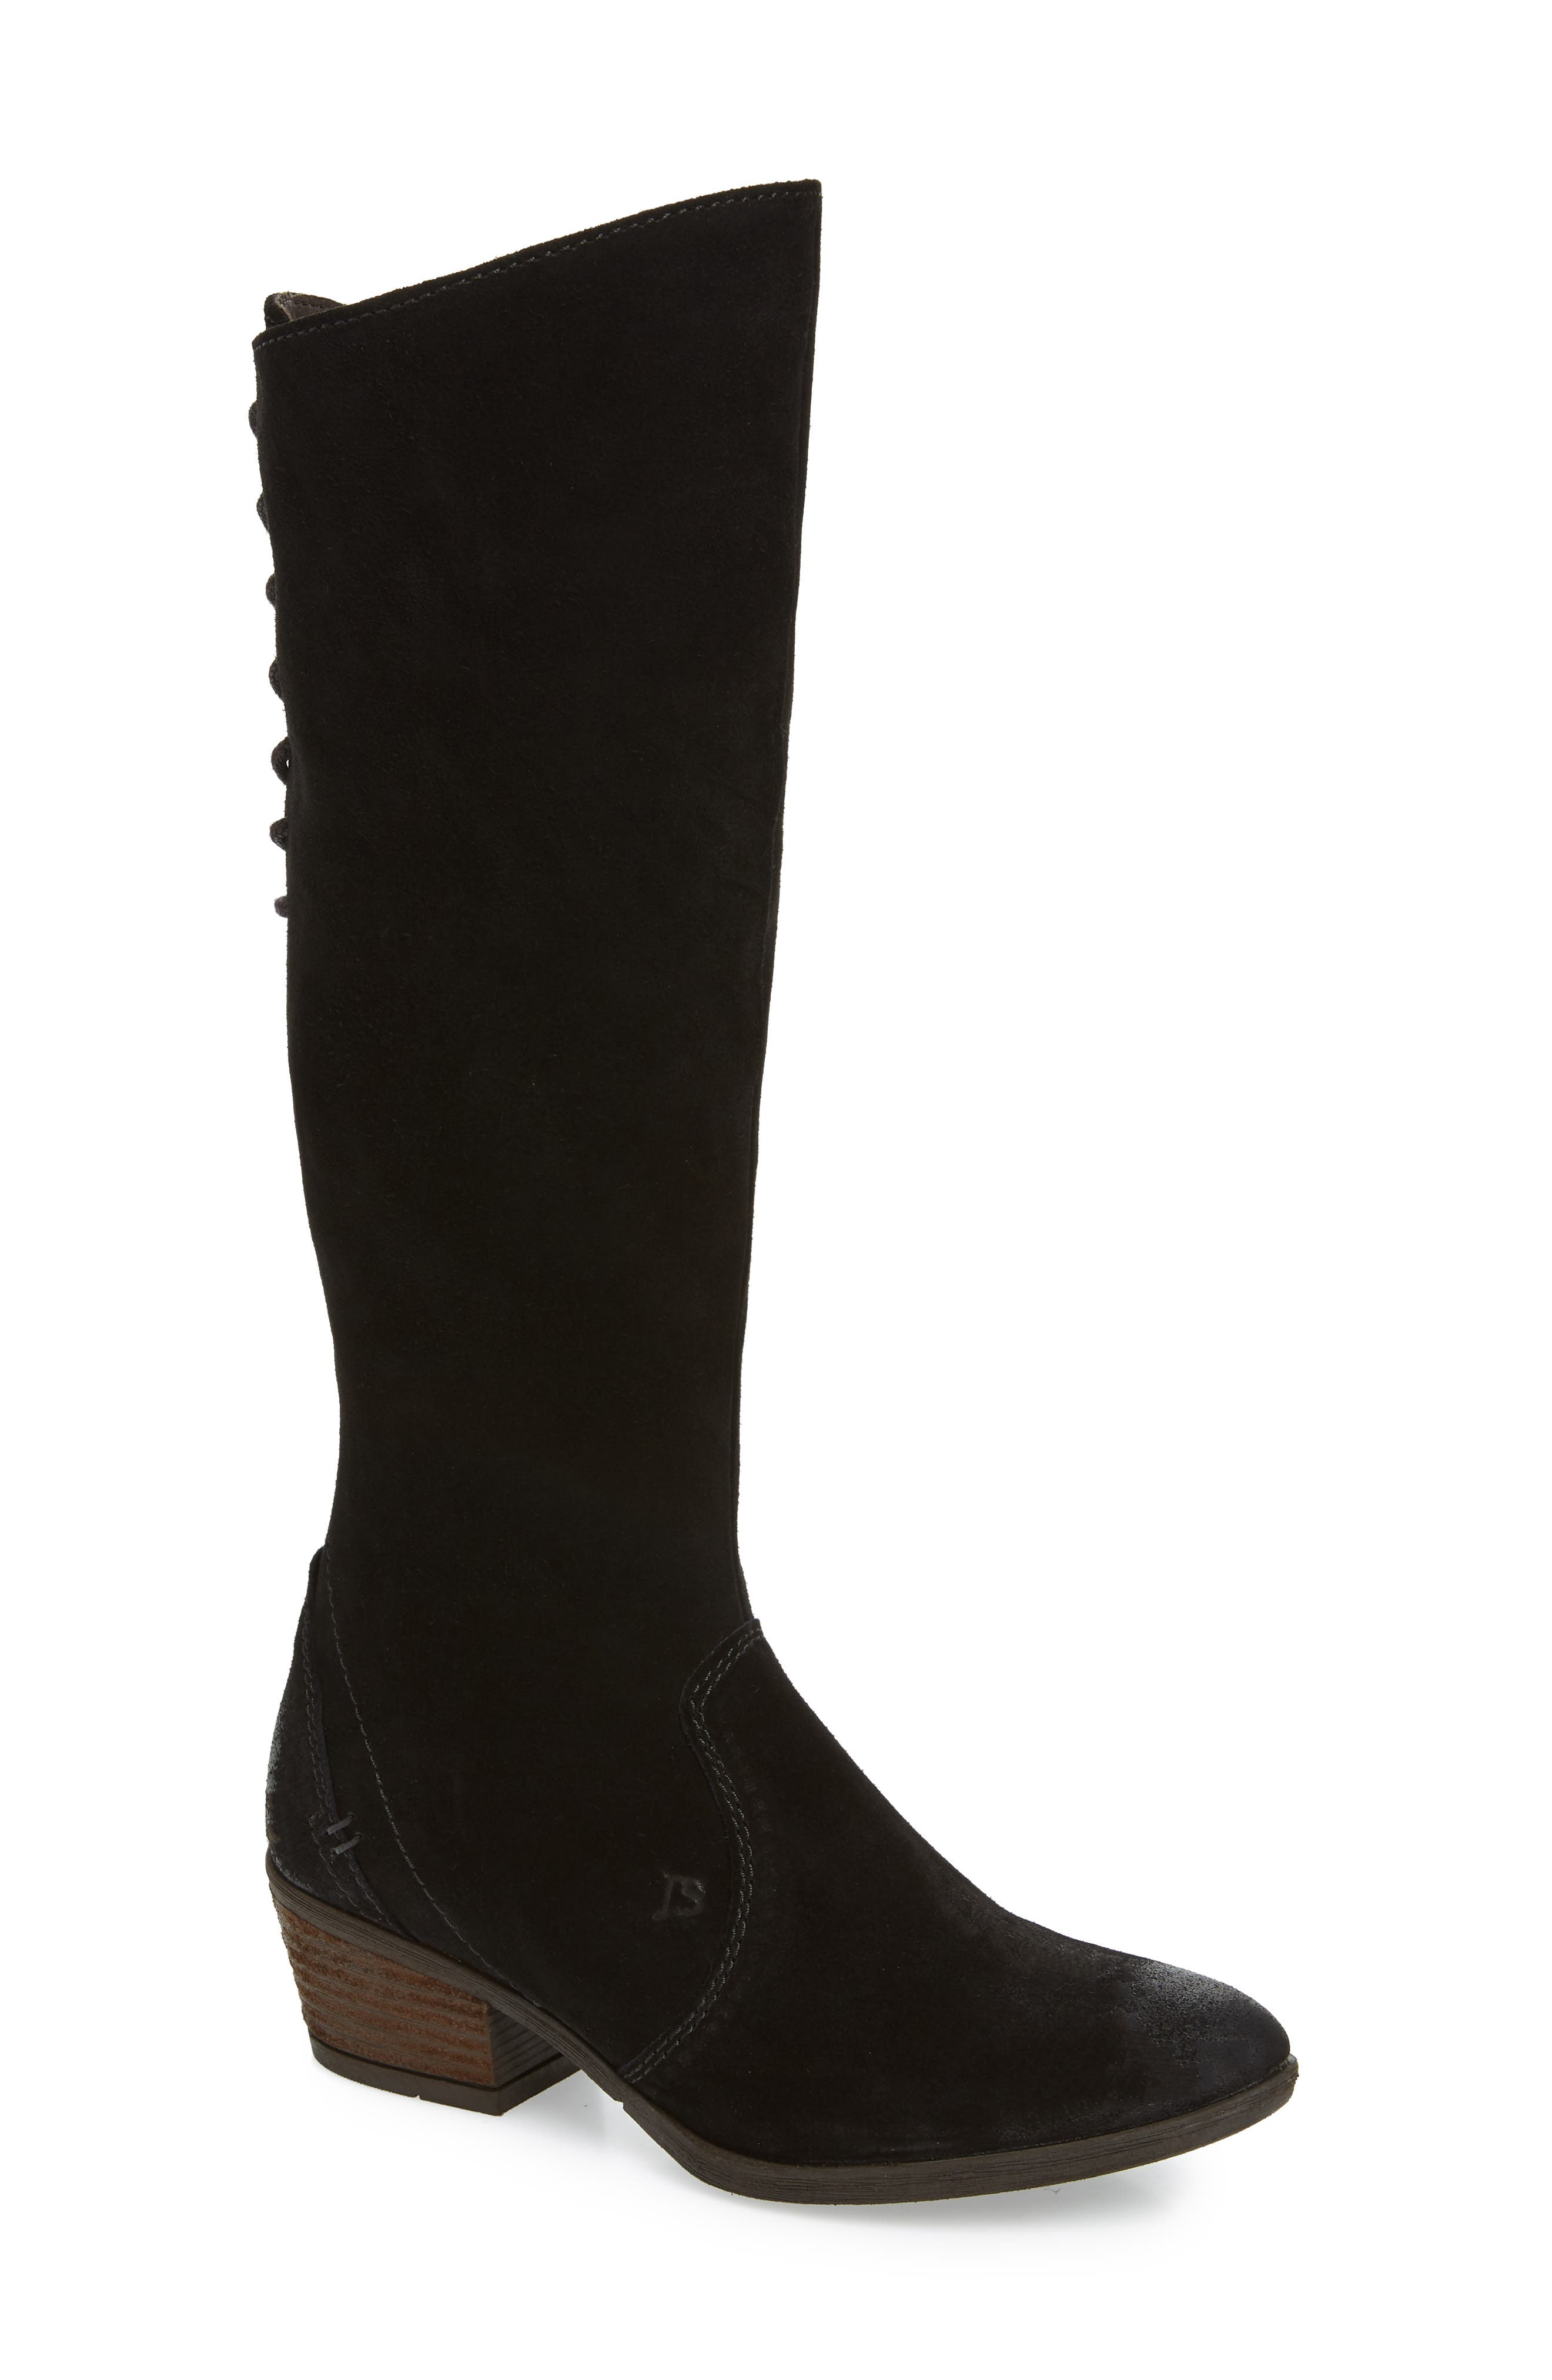 Daphne 33 Knee High Boot, Main, color, 005